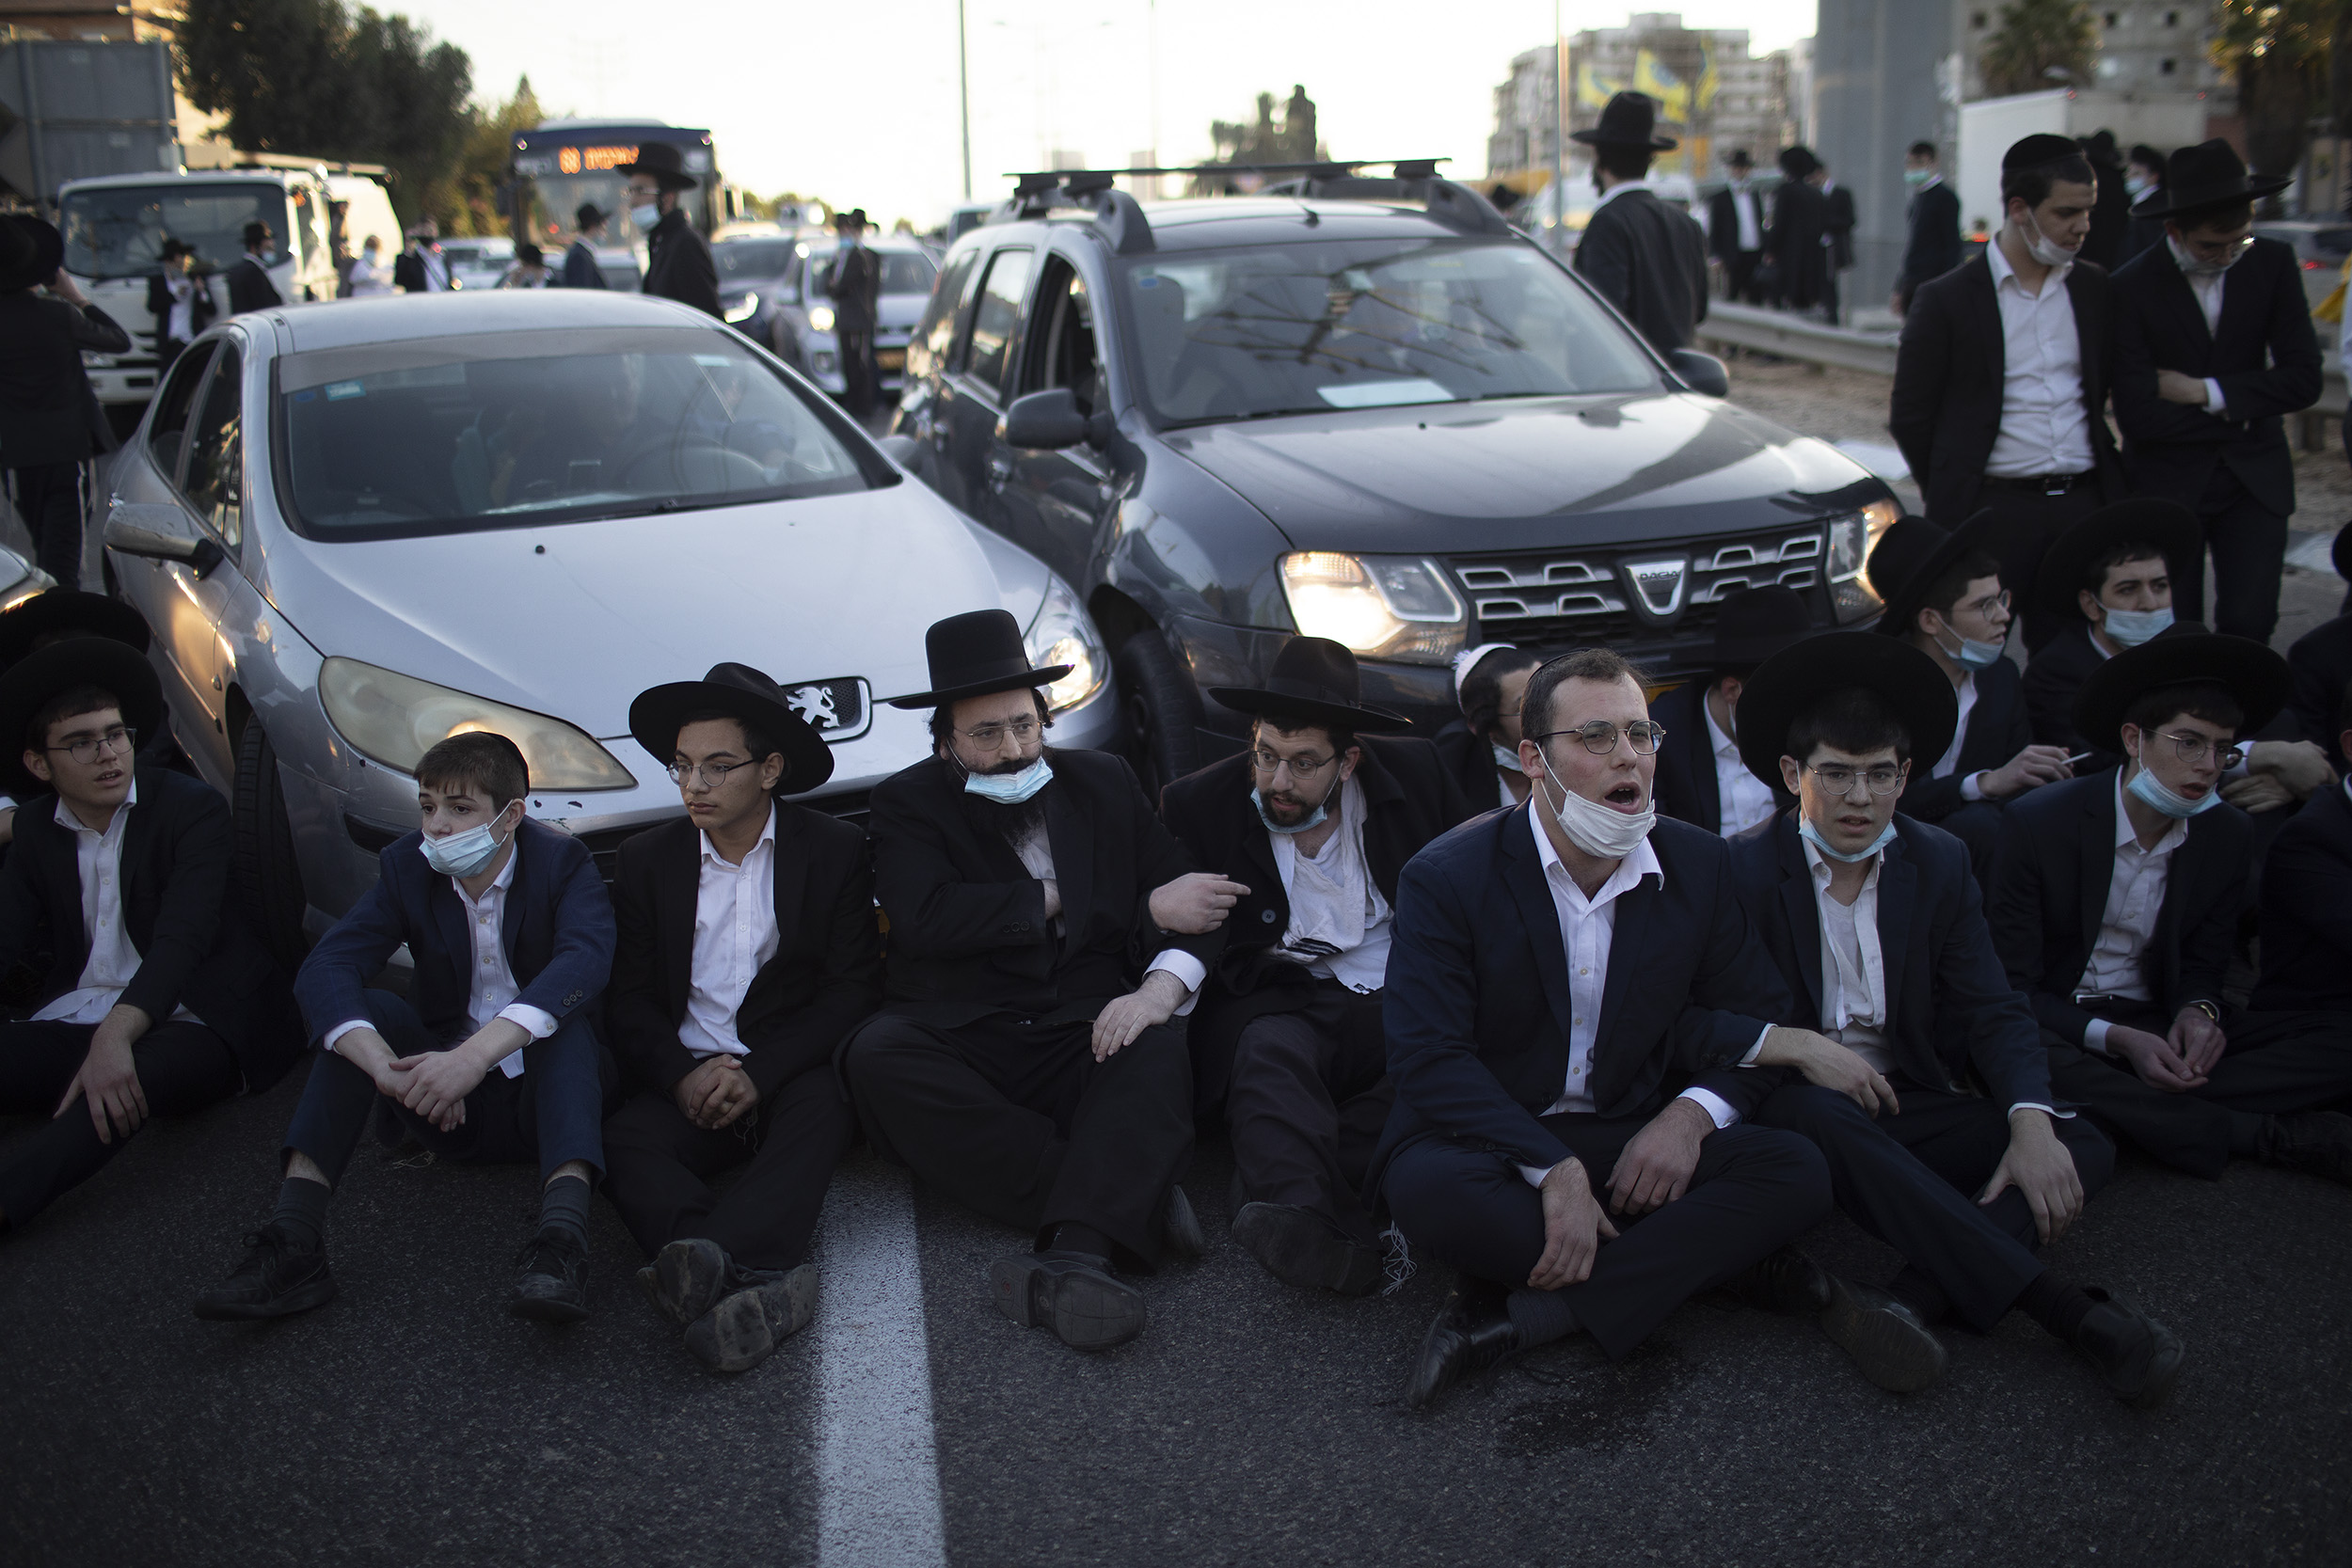 Ḥaredi Jews block traffic in the city of Bnai Brak as a protest against the Israeli government's third coronavirus lockdown on December 27, 2020. Ilia Yefimovich/picture alliance via Getty Images.